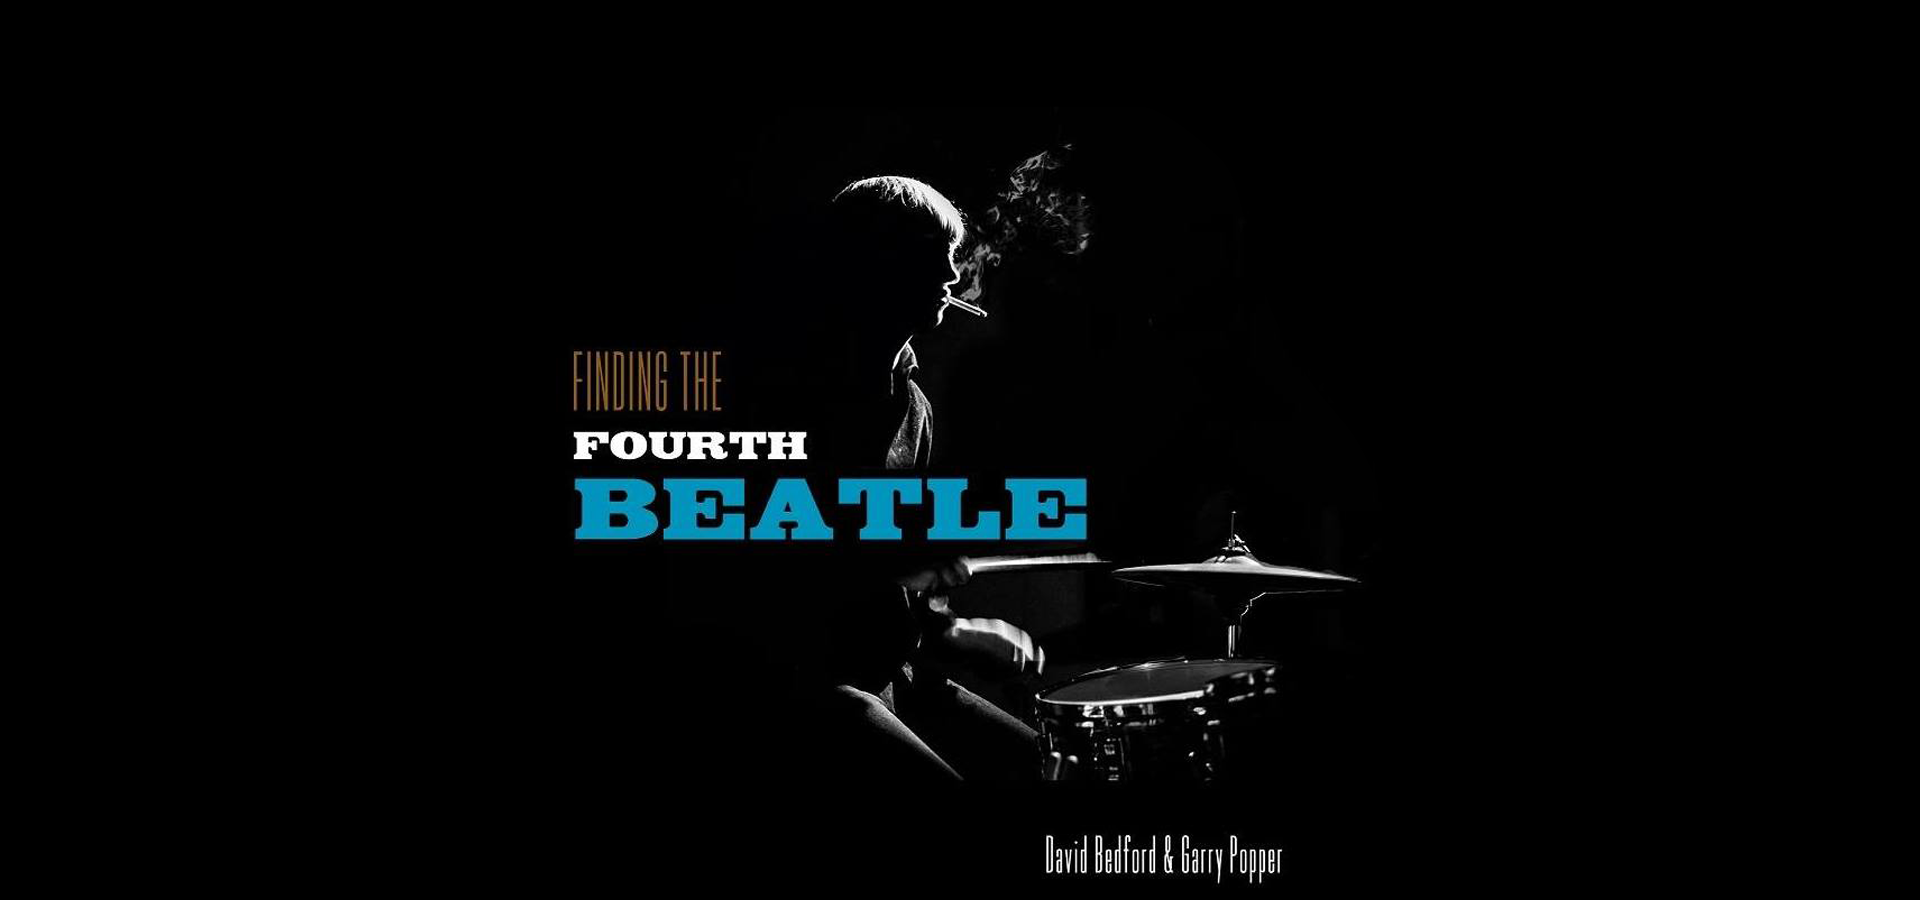 Interview: Finding the Fourth Beatle